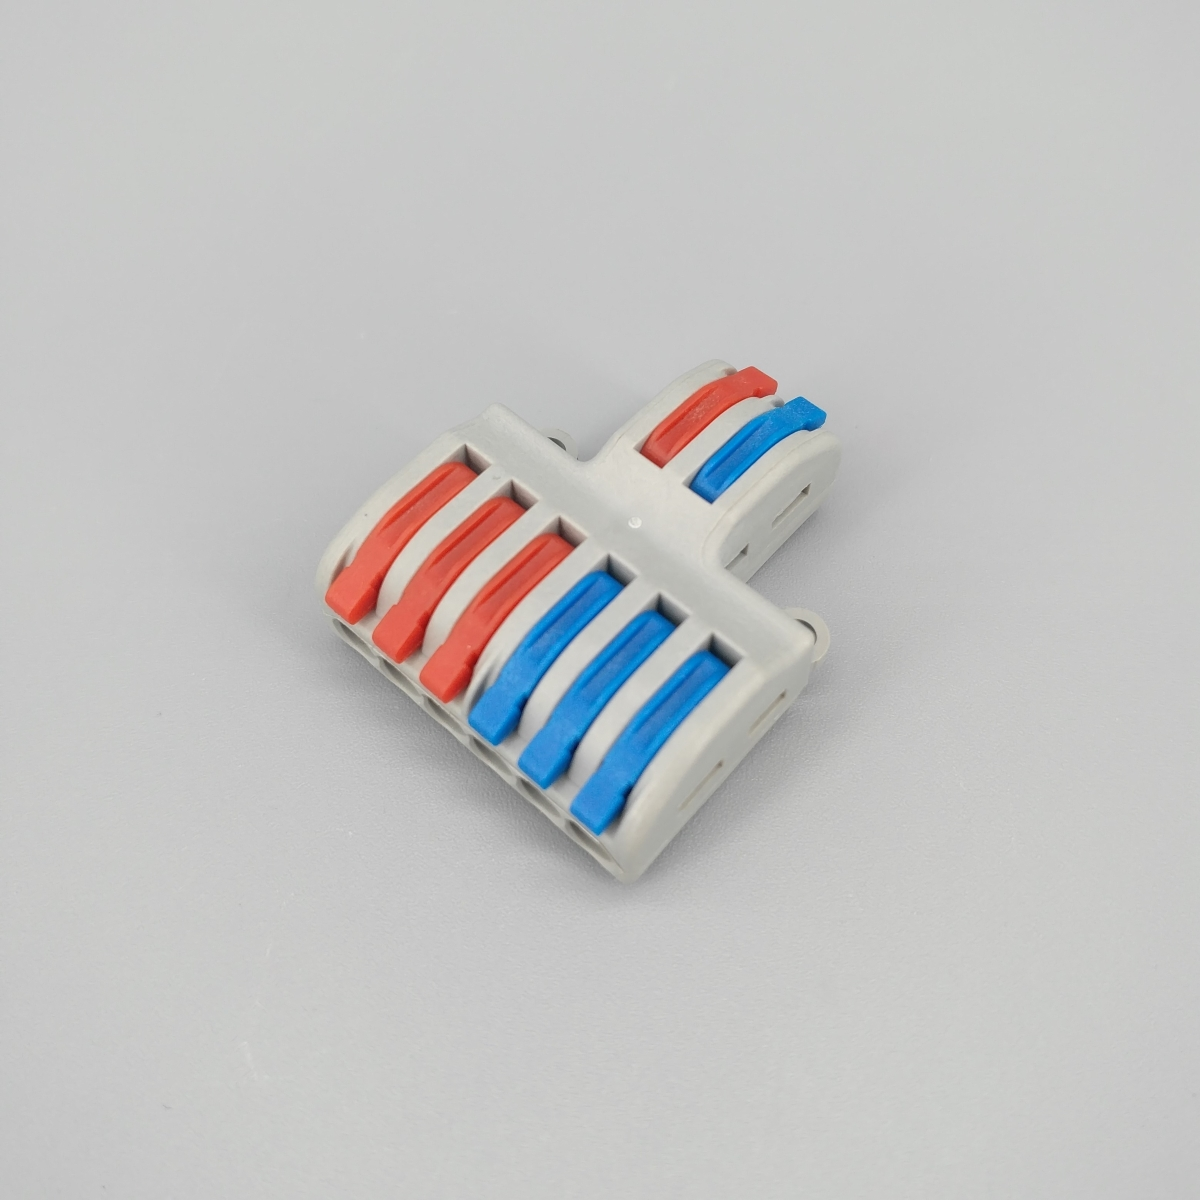 10pcs SPL-62 Universal Compact Wire Wiring Connector Conductor Terminal Block With Lever